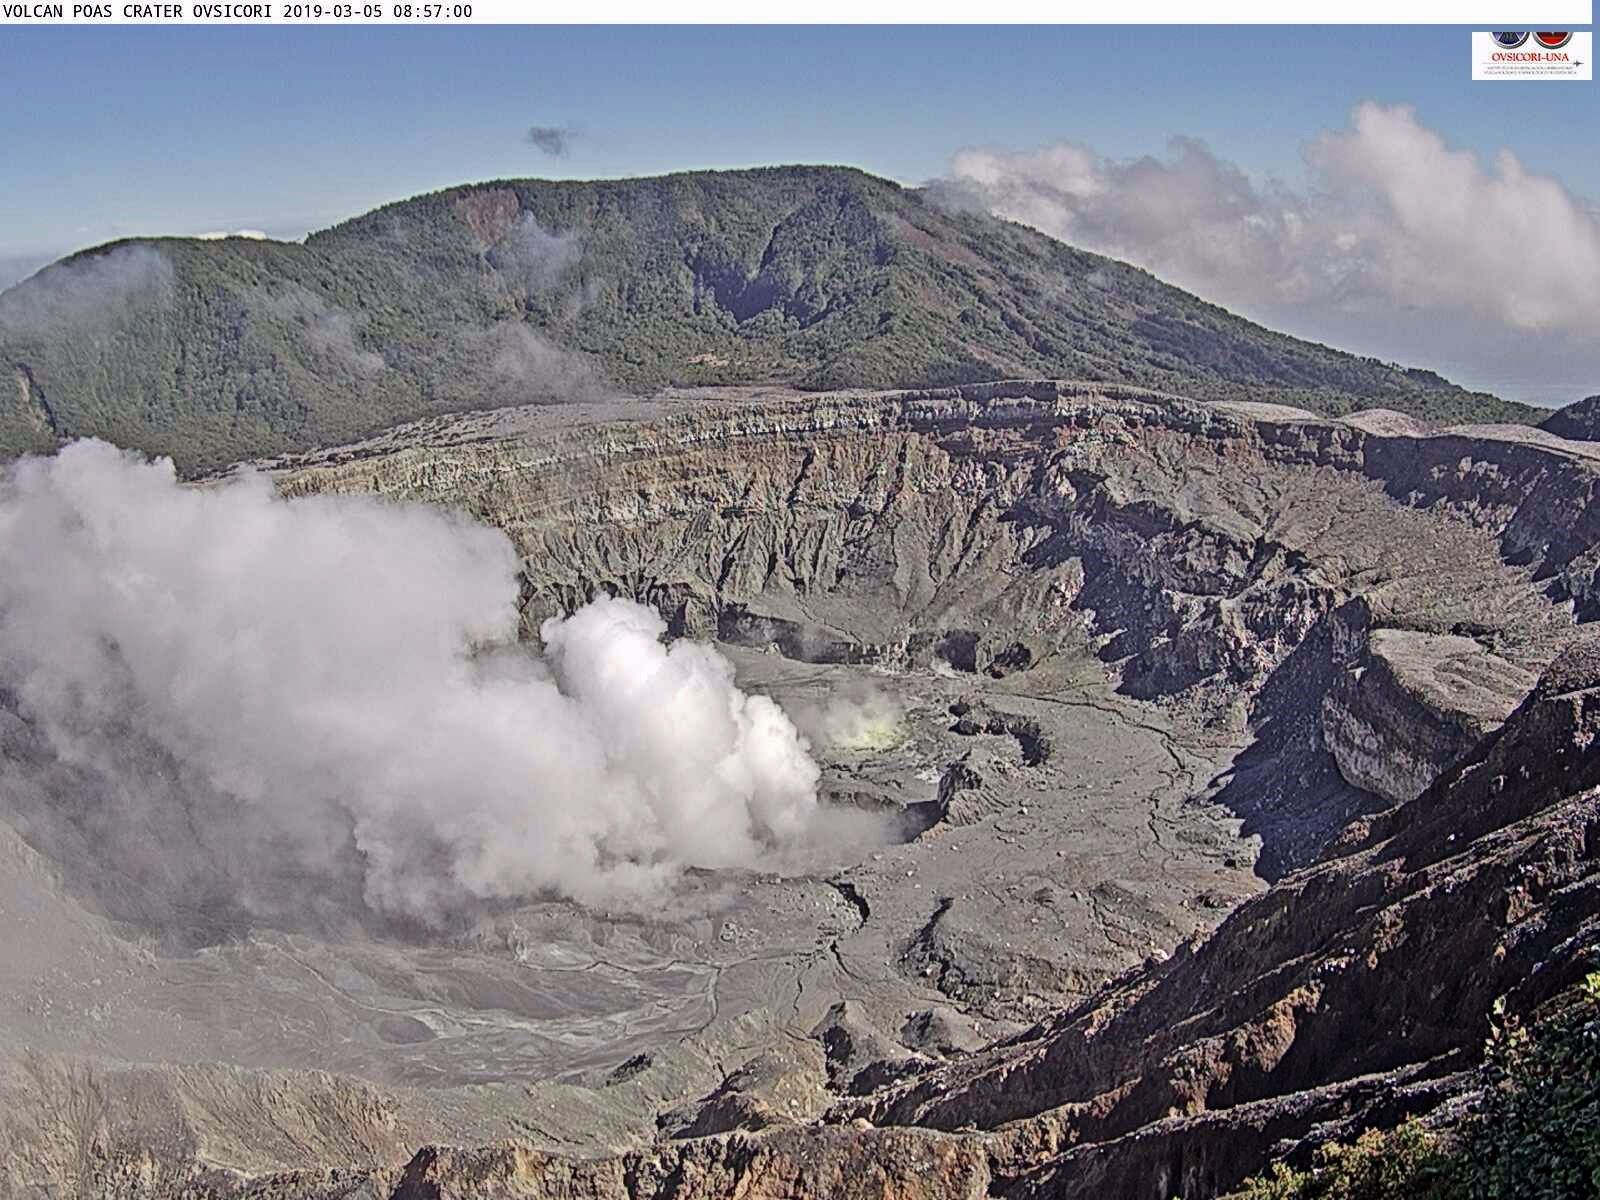 Poas - plume of gas and steam on 05.03.2019 / 8h57 - Ovsicori webcam